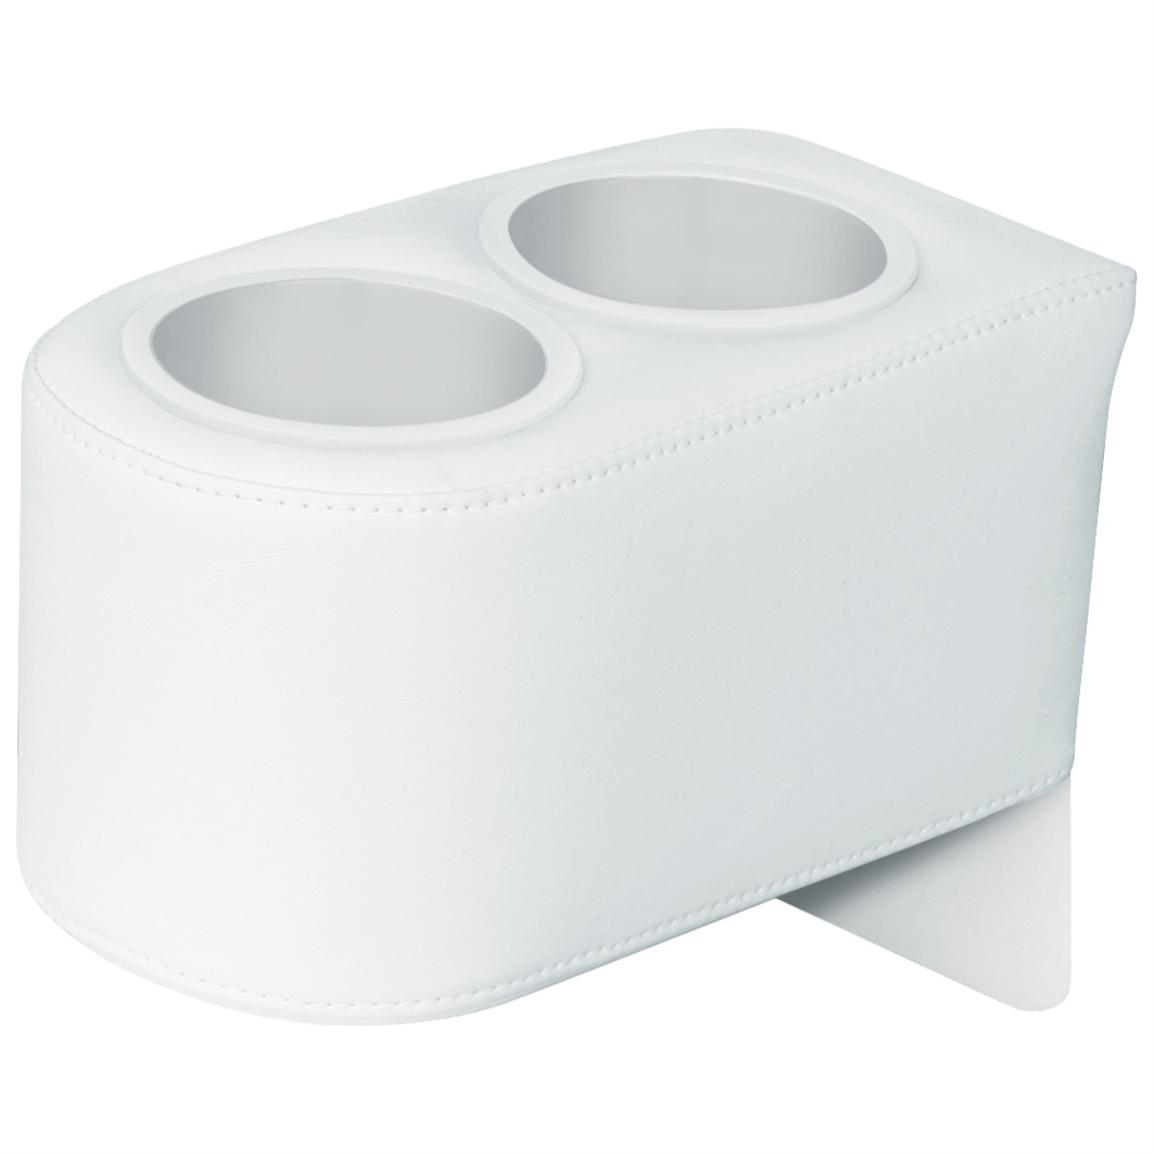 Wise® Double Drink Holder, White